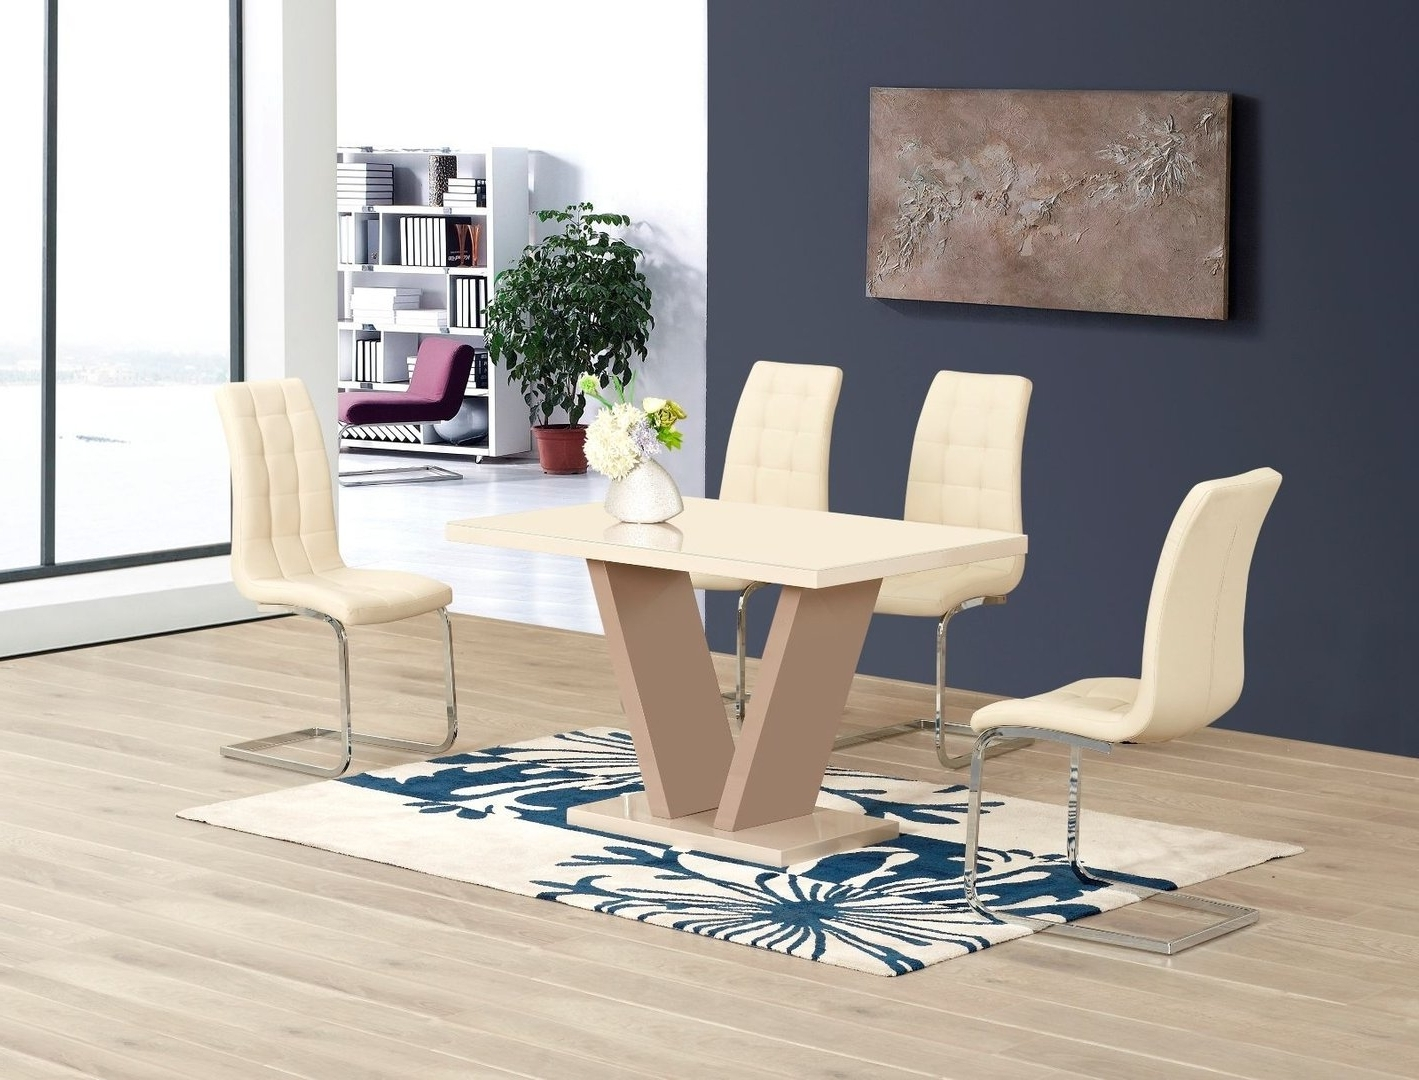 Cream High Gloss Glass Dining Table And 6 Chairs – Homegenies Within Best And Newest White Gloss Dining Tables And 6 Chairs (View 5 of 25)